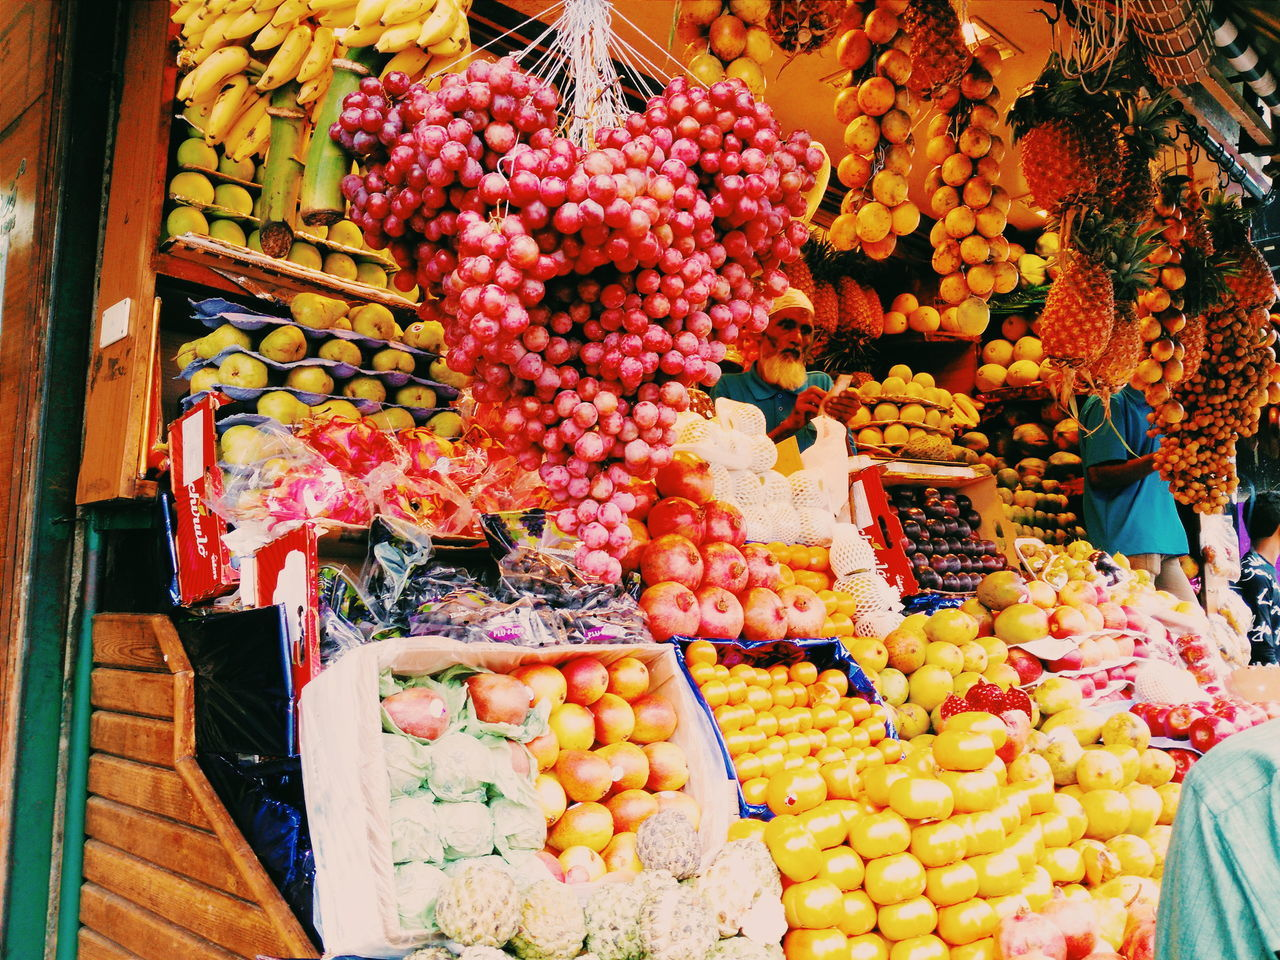 variation, for sale, retail, choice, abundance, food and drink, food, large group of objects, market, freshness, market stall, outdoors, day, small business, healthy eating, multi colored, fruit, no people, arrangement, sweet food